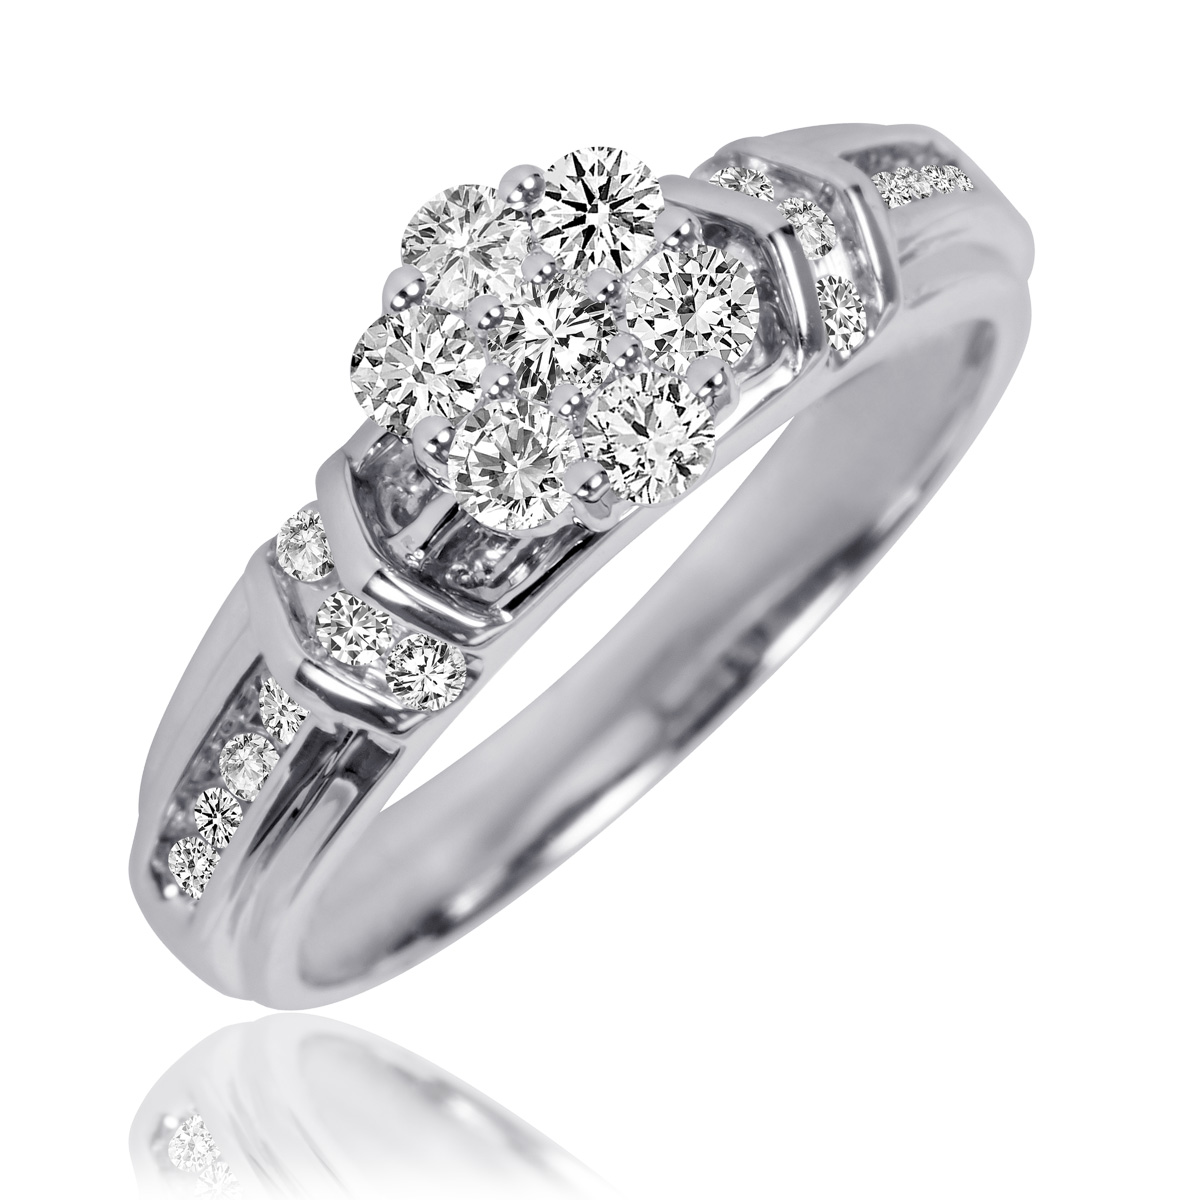 3 4 carat t w bridal wedding ring set 10k